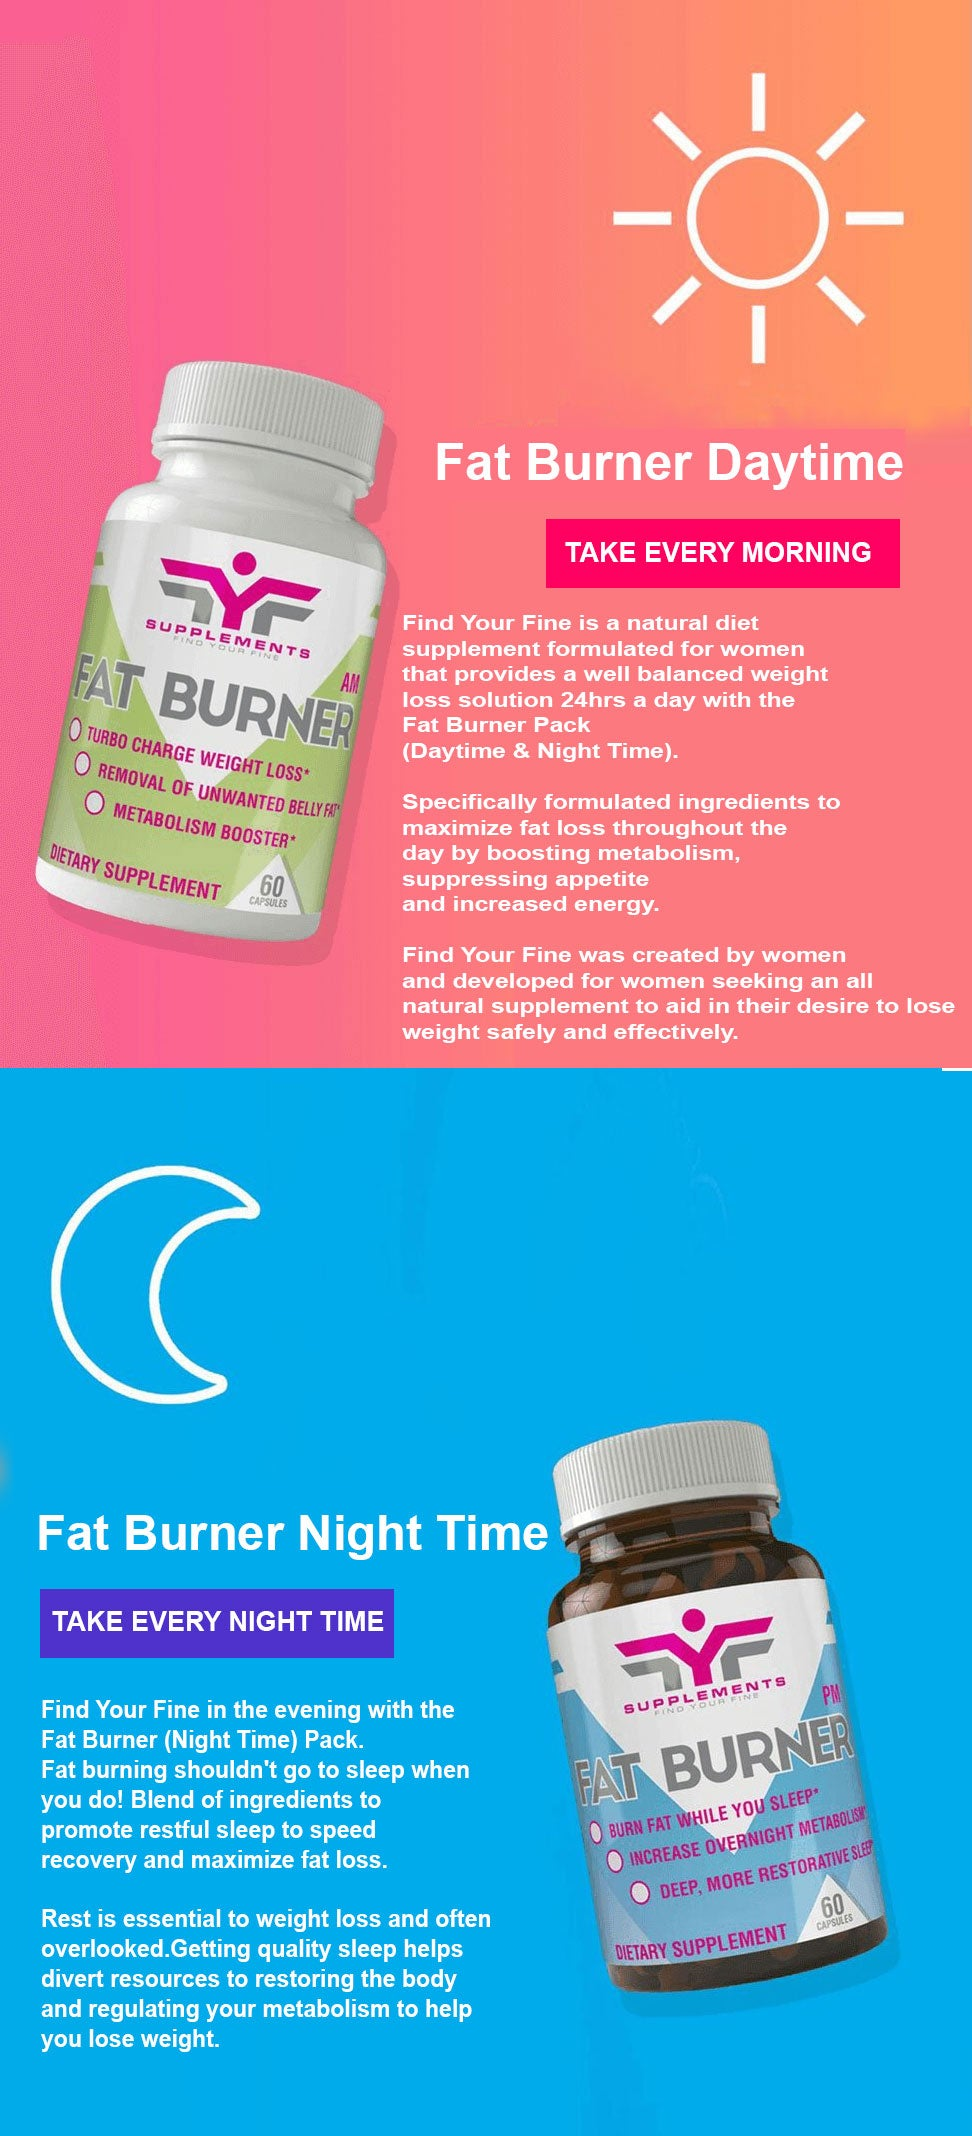 Female weight loss supplements